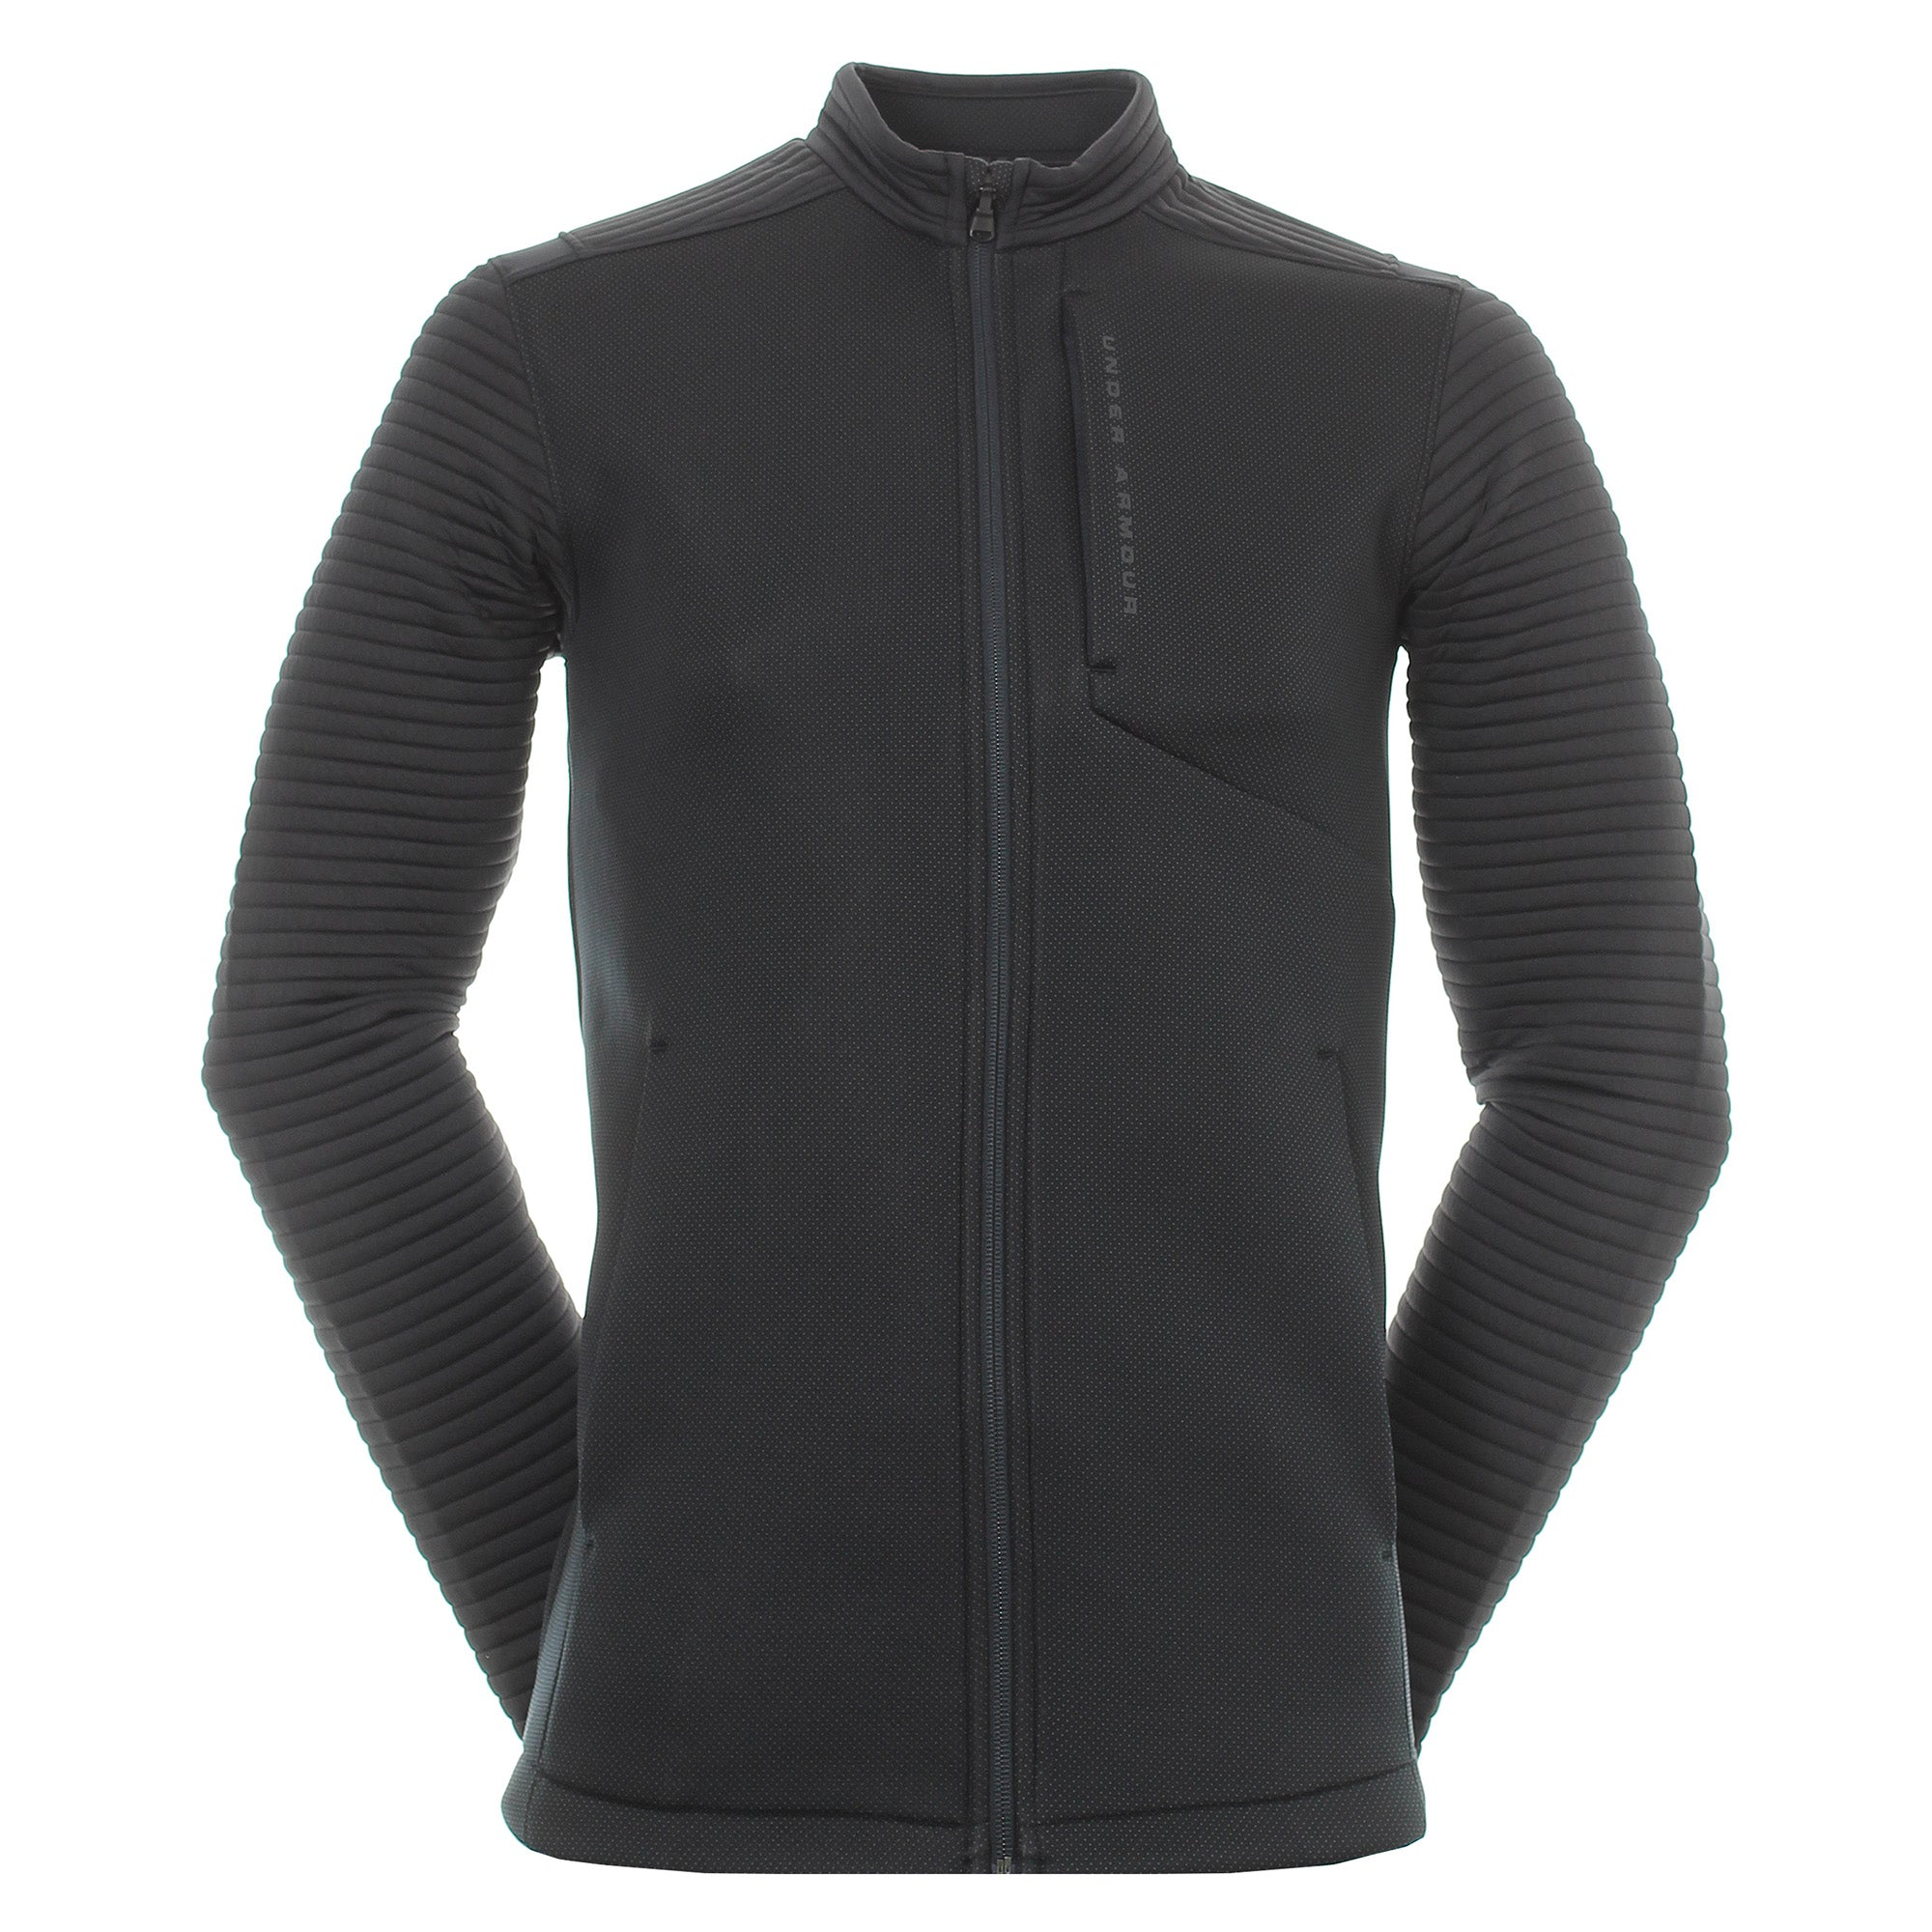 Under Armour Golf Storm Daytona Full Zip